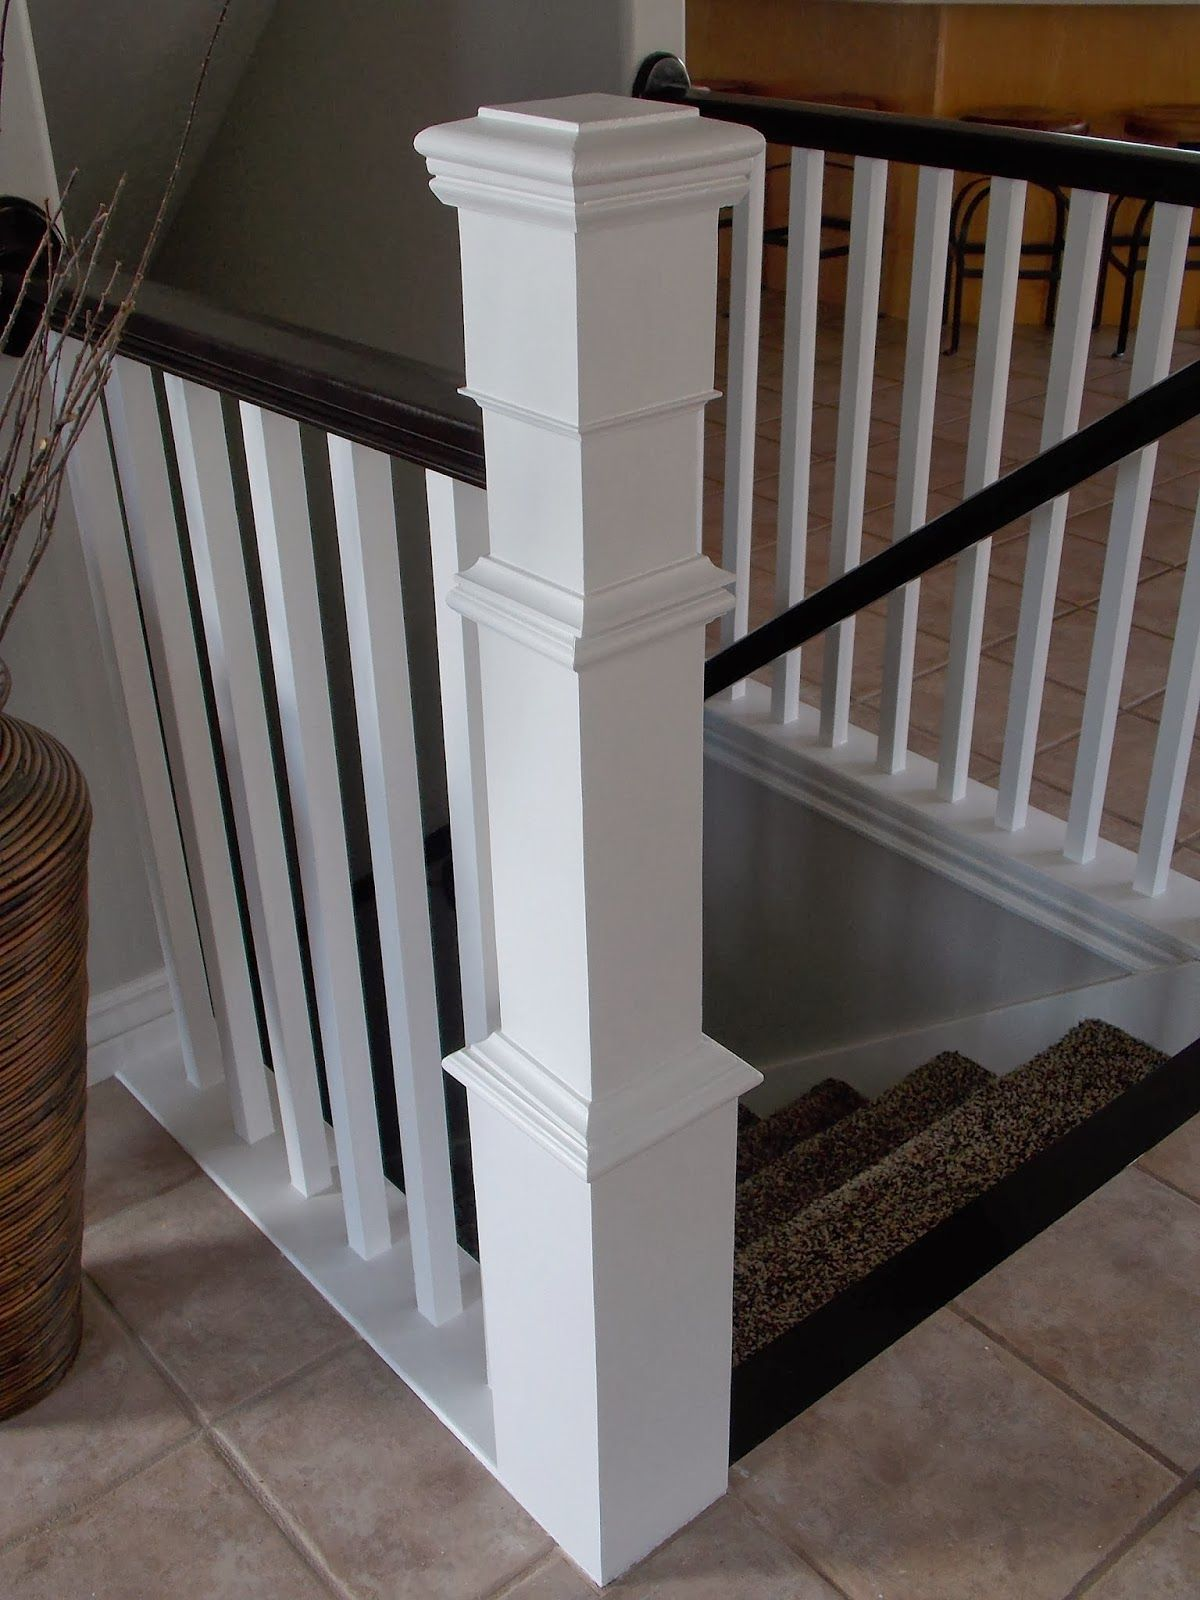 How To Build A Newel Post Around An Existing Banister   TDA Designs  Featured On @